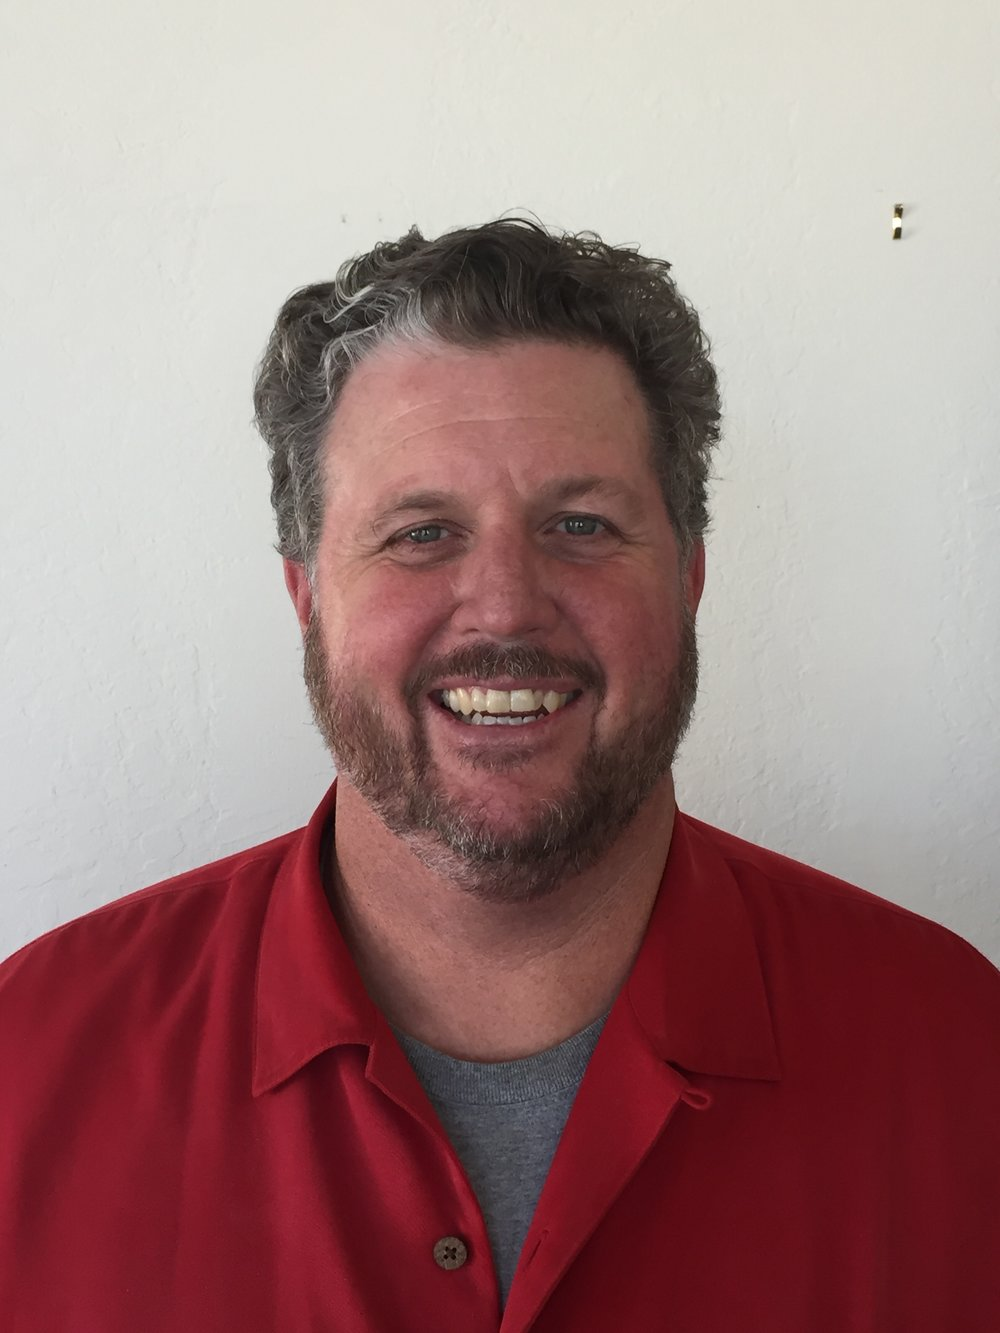 Brett Schiller, Vice President    Brett Schiller joined Schiller Construction with his brother in 1992 as an apprentice in the field, and has worked hard to establish himself as Vice President and Primary Sales Manager today.